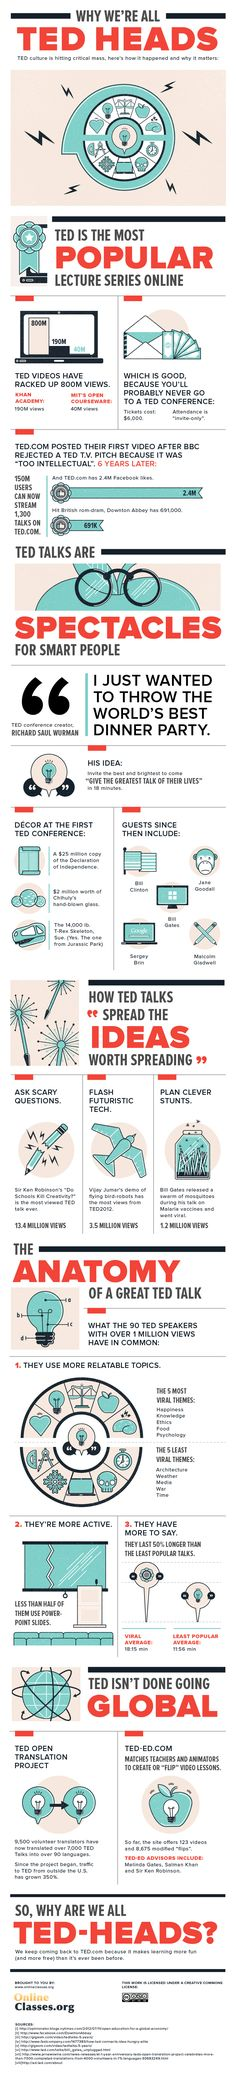 AMAZING SECRETS ABOUT TED TALKS